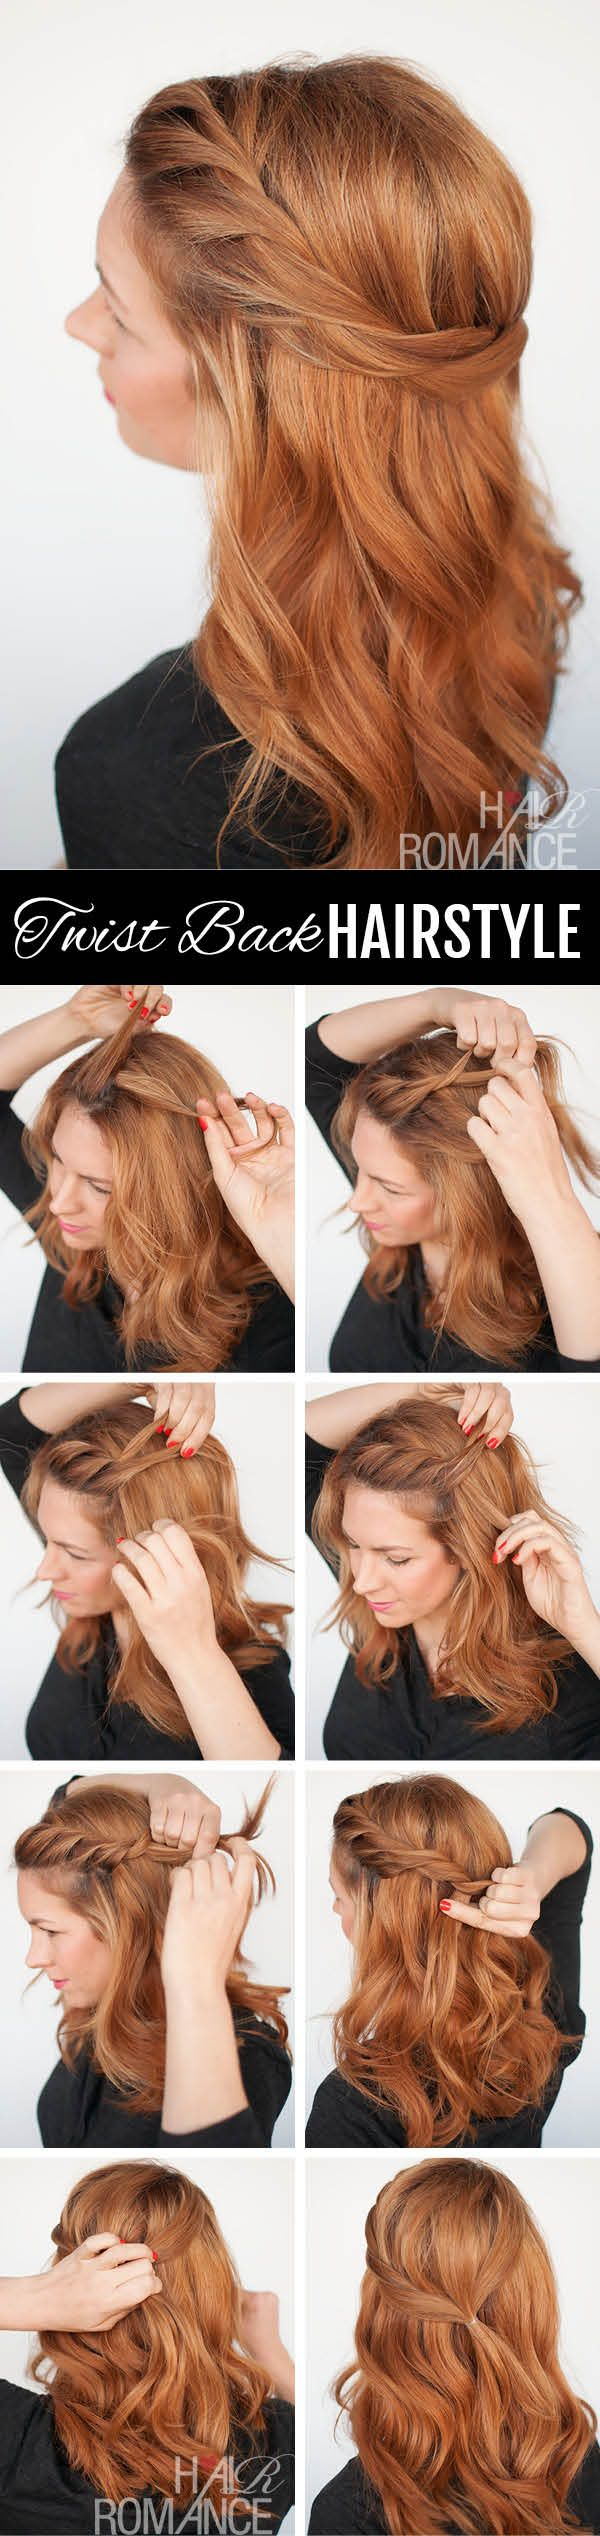 the twist back – easy half-up hairstyle tutorial | growing